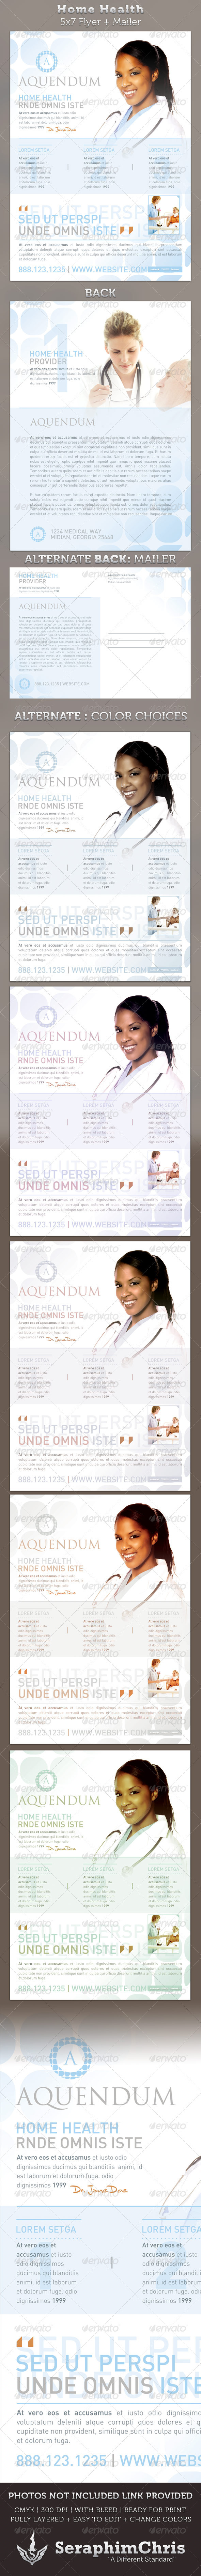 GraphicRiver Home Health 5x7 Medical Healthcare Flyer & Mailer 2220022